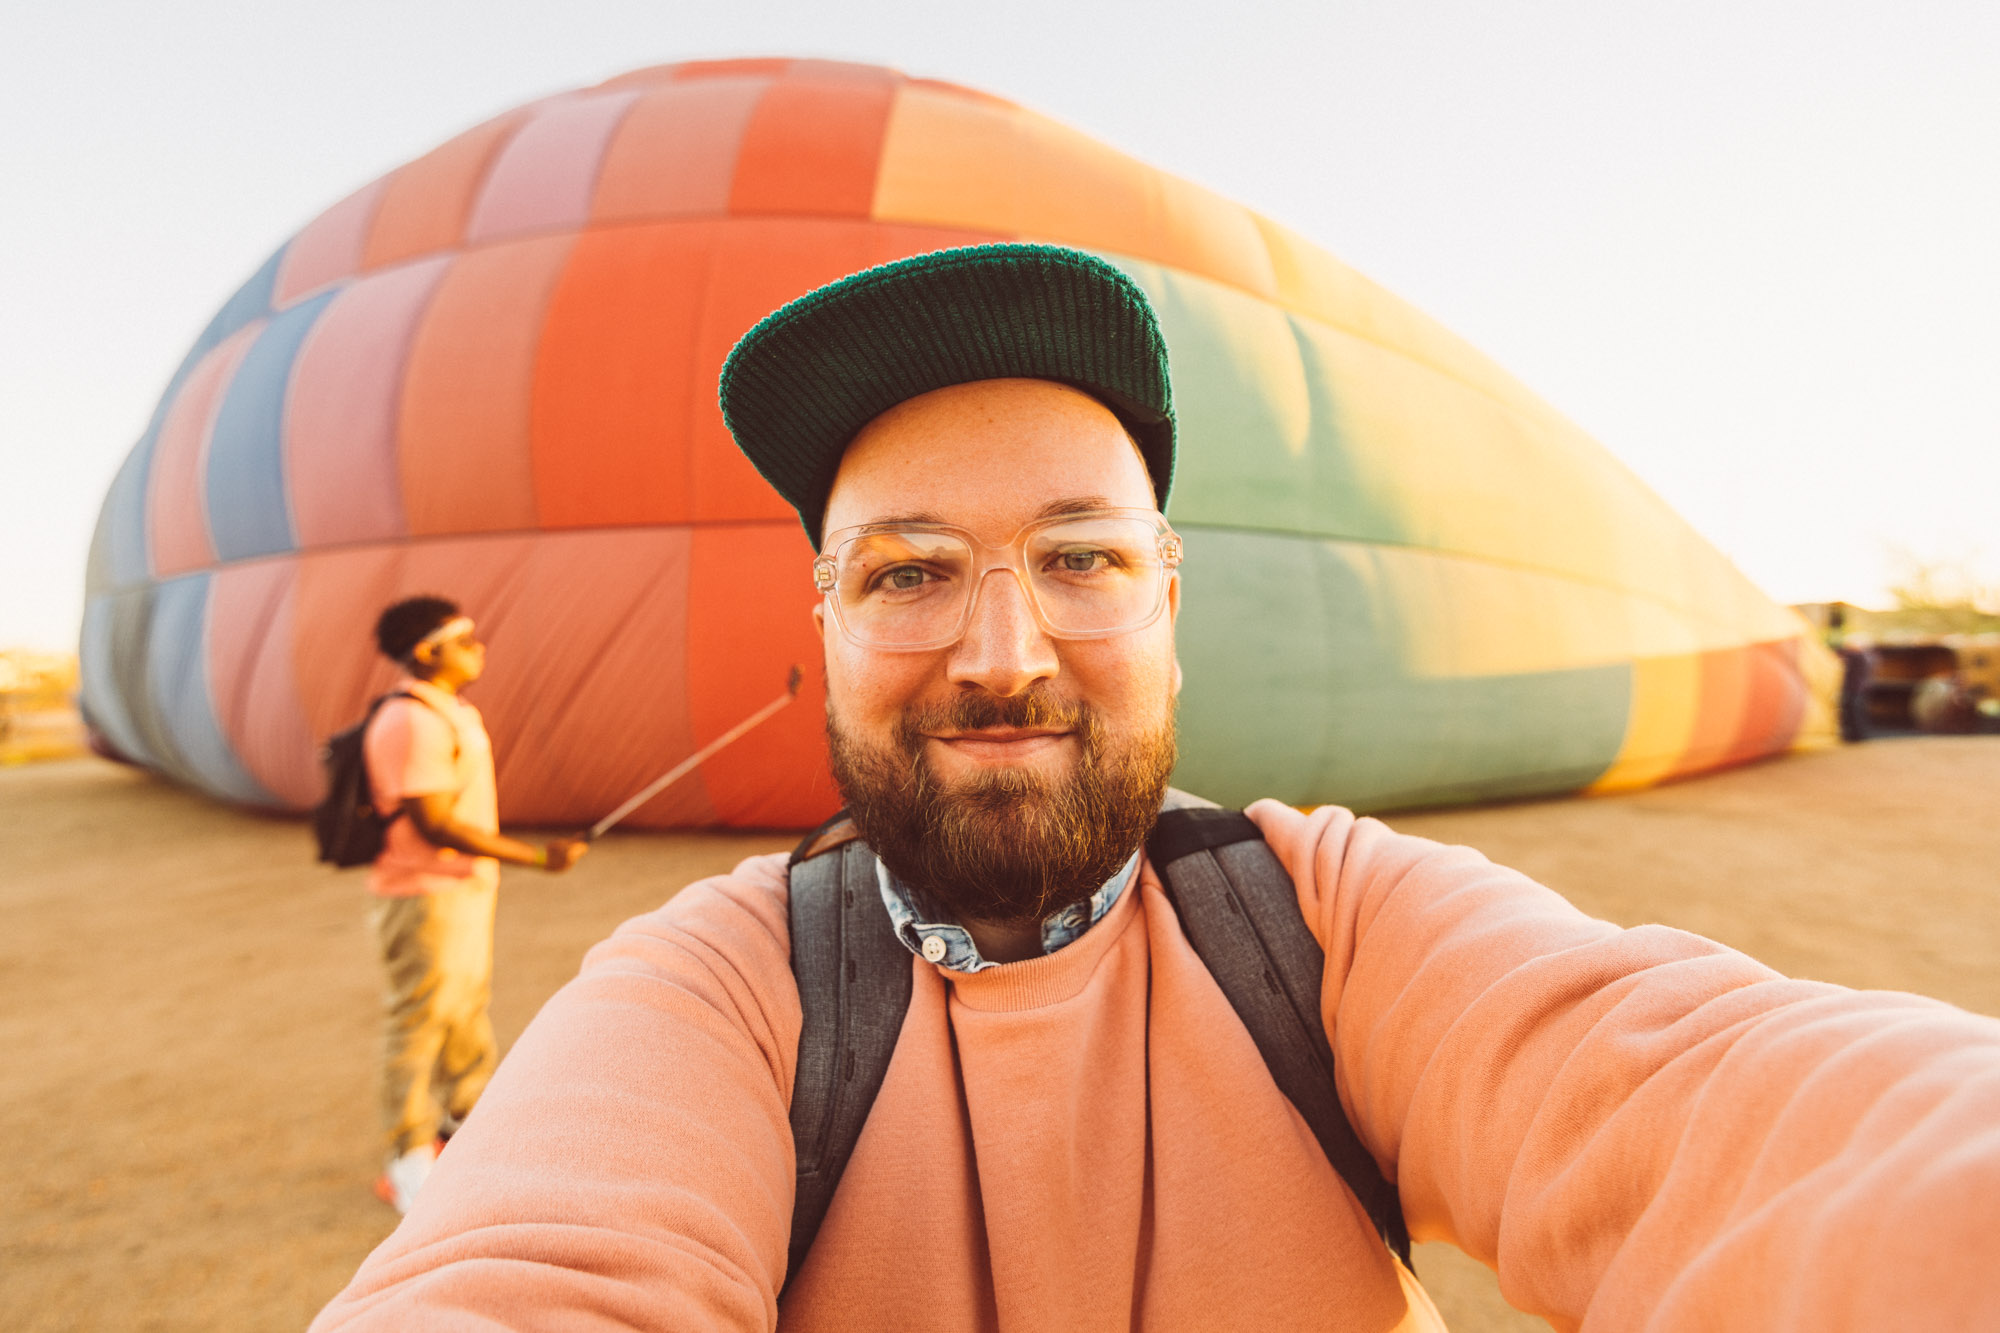 Things To Do In Phoenix — Hot Air Balloon Ride With Hot Air Expeditions At Sunrise — Jeff On The Road— All photos are under Copyright  © 2019 Jeff Frenette Photography / dezjeff. To use the photos, please contact me at dezjeff@me.com.